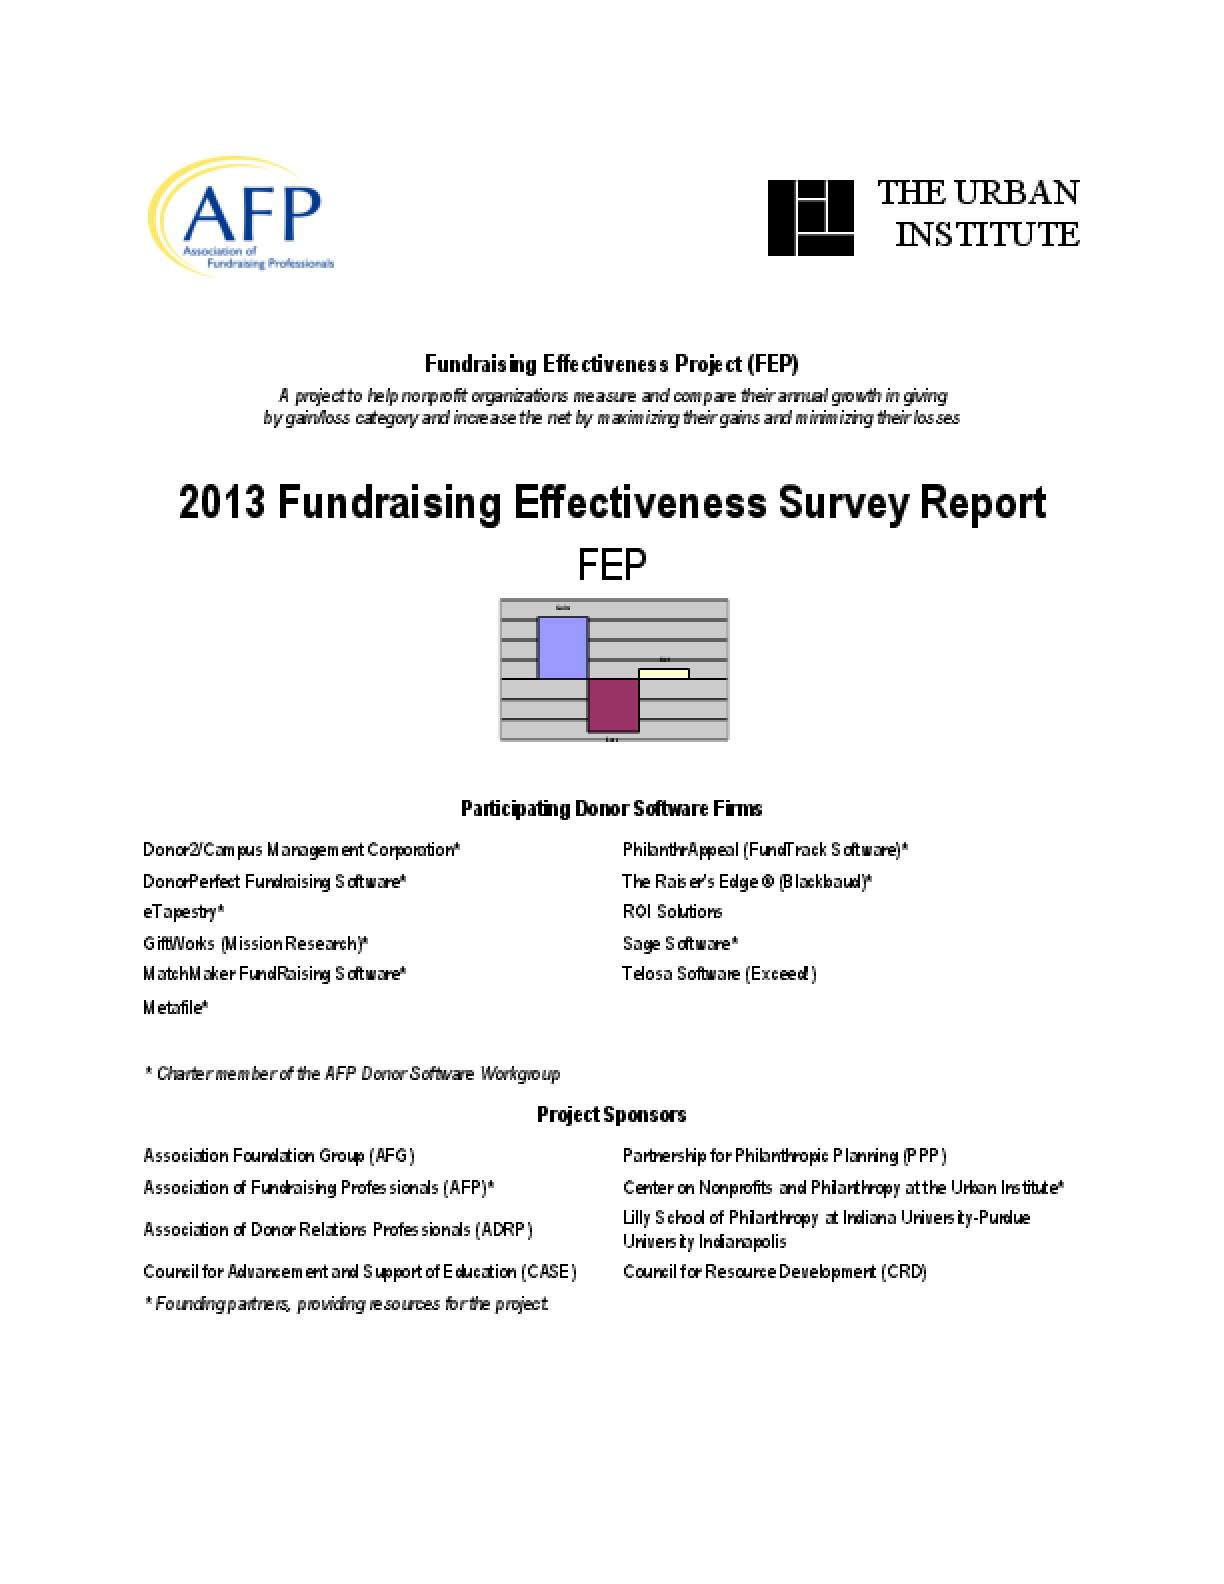 2013 Fundraising Effectiveness Survey Report